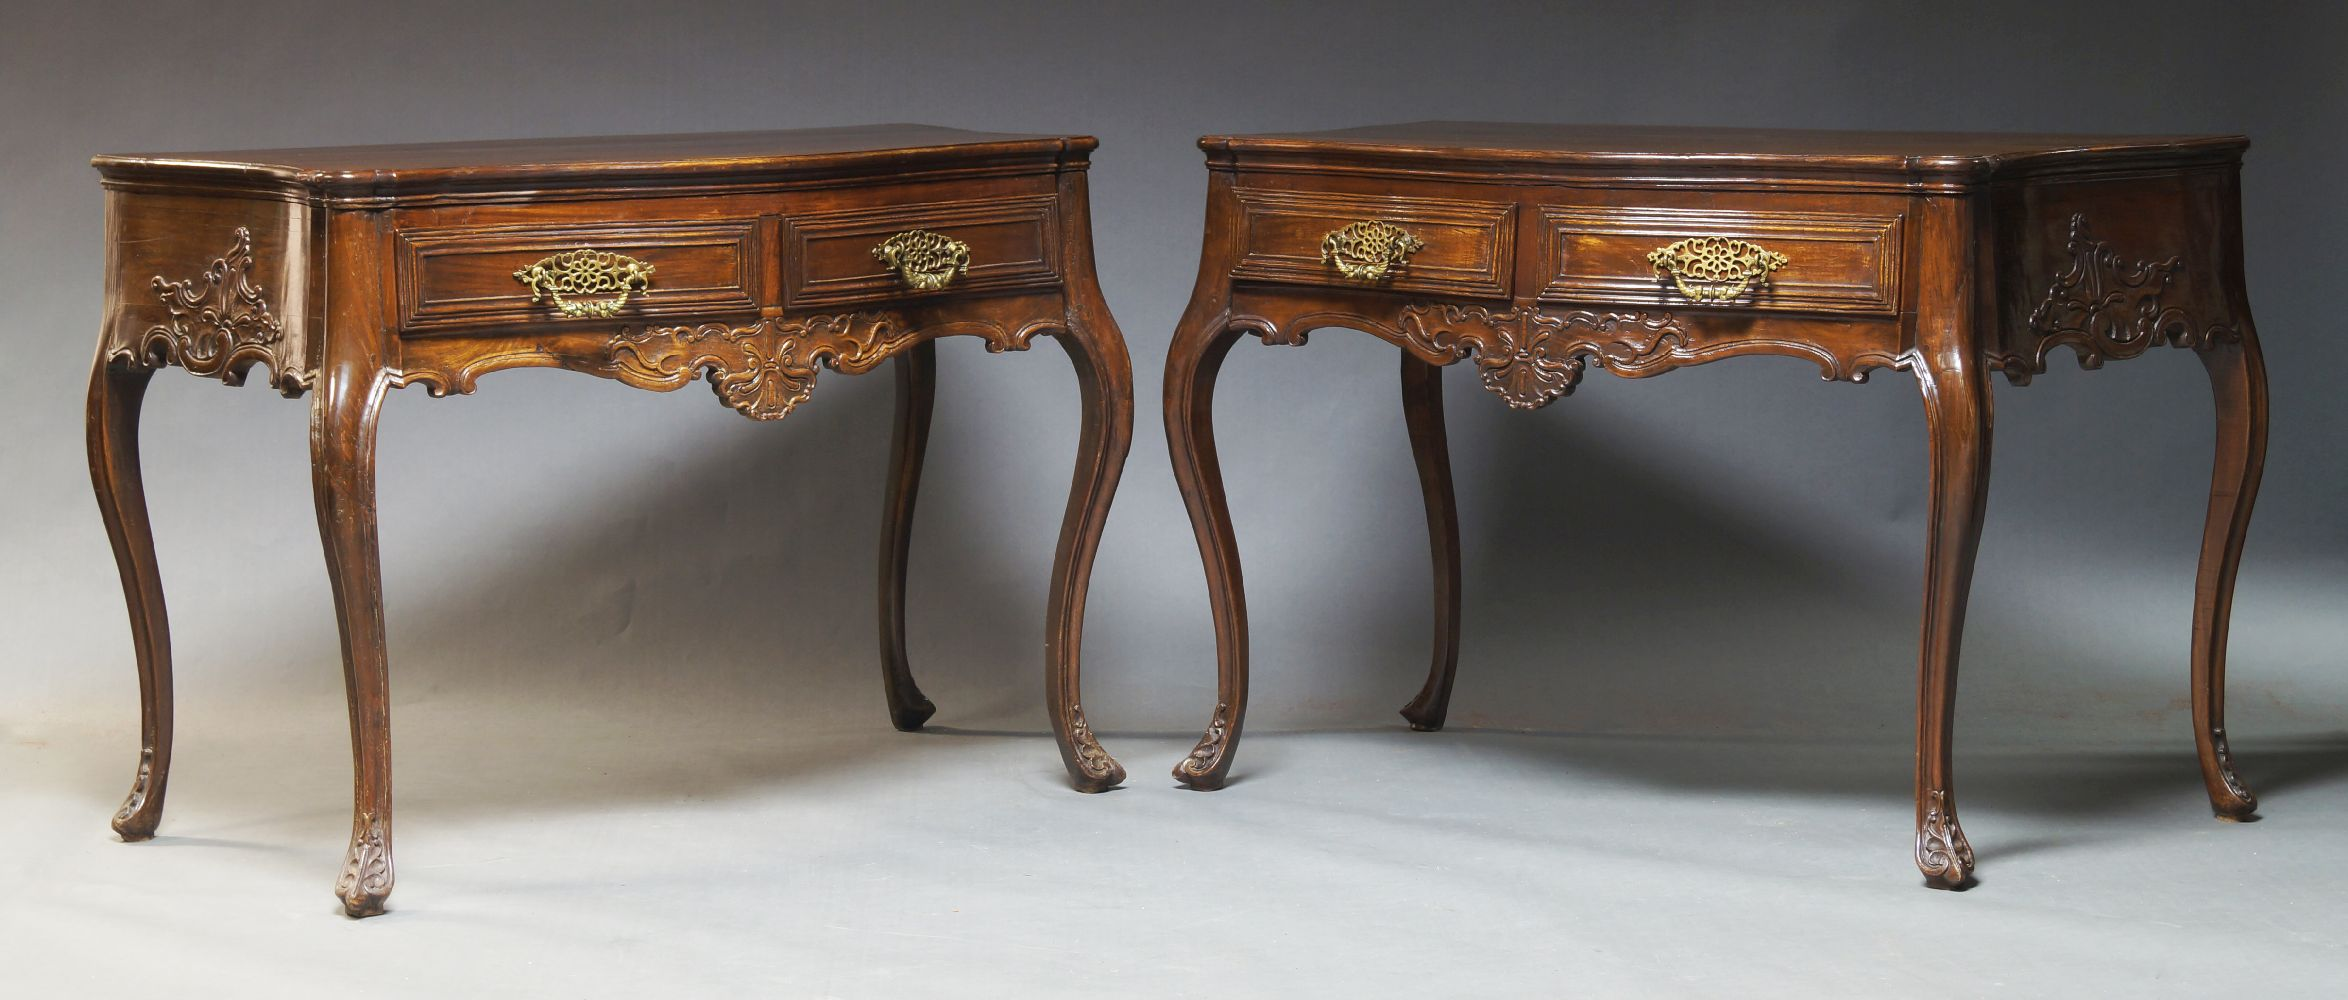 A pair of Louis XV style provincial side tables, 19th Century and later, with serpentine tops